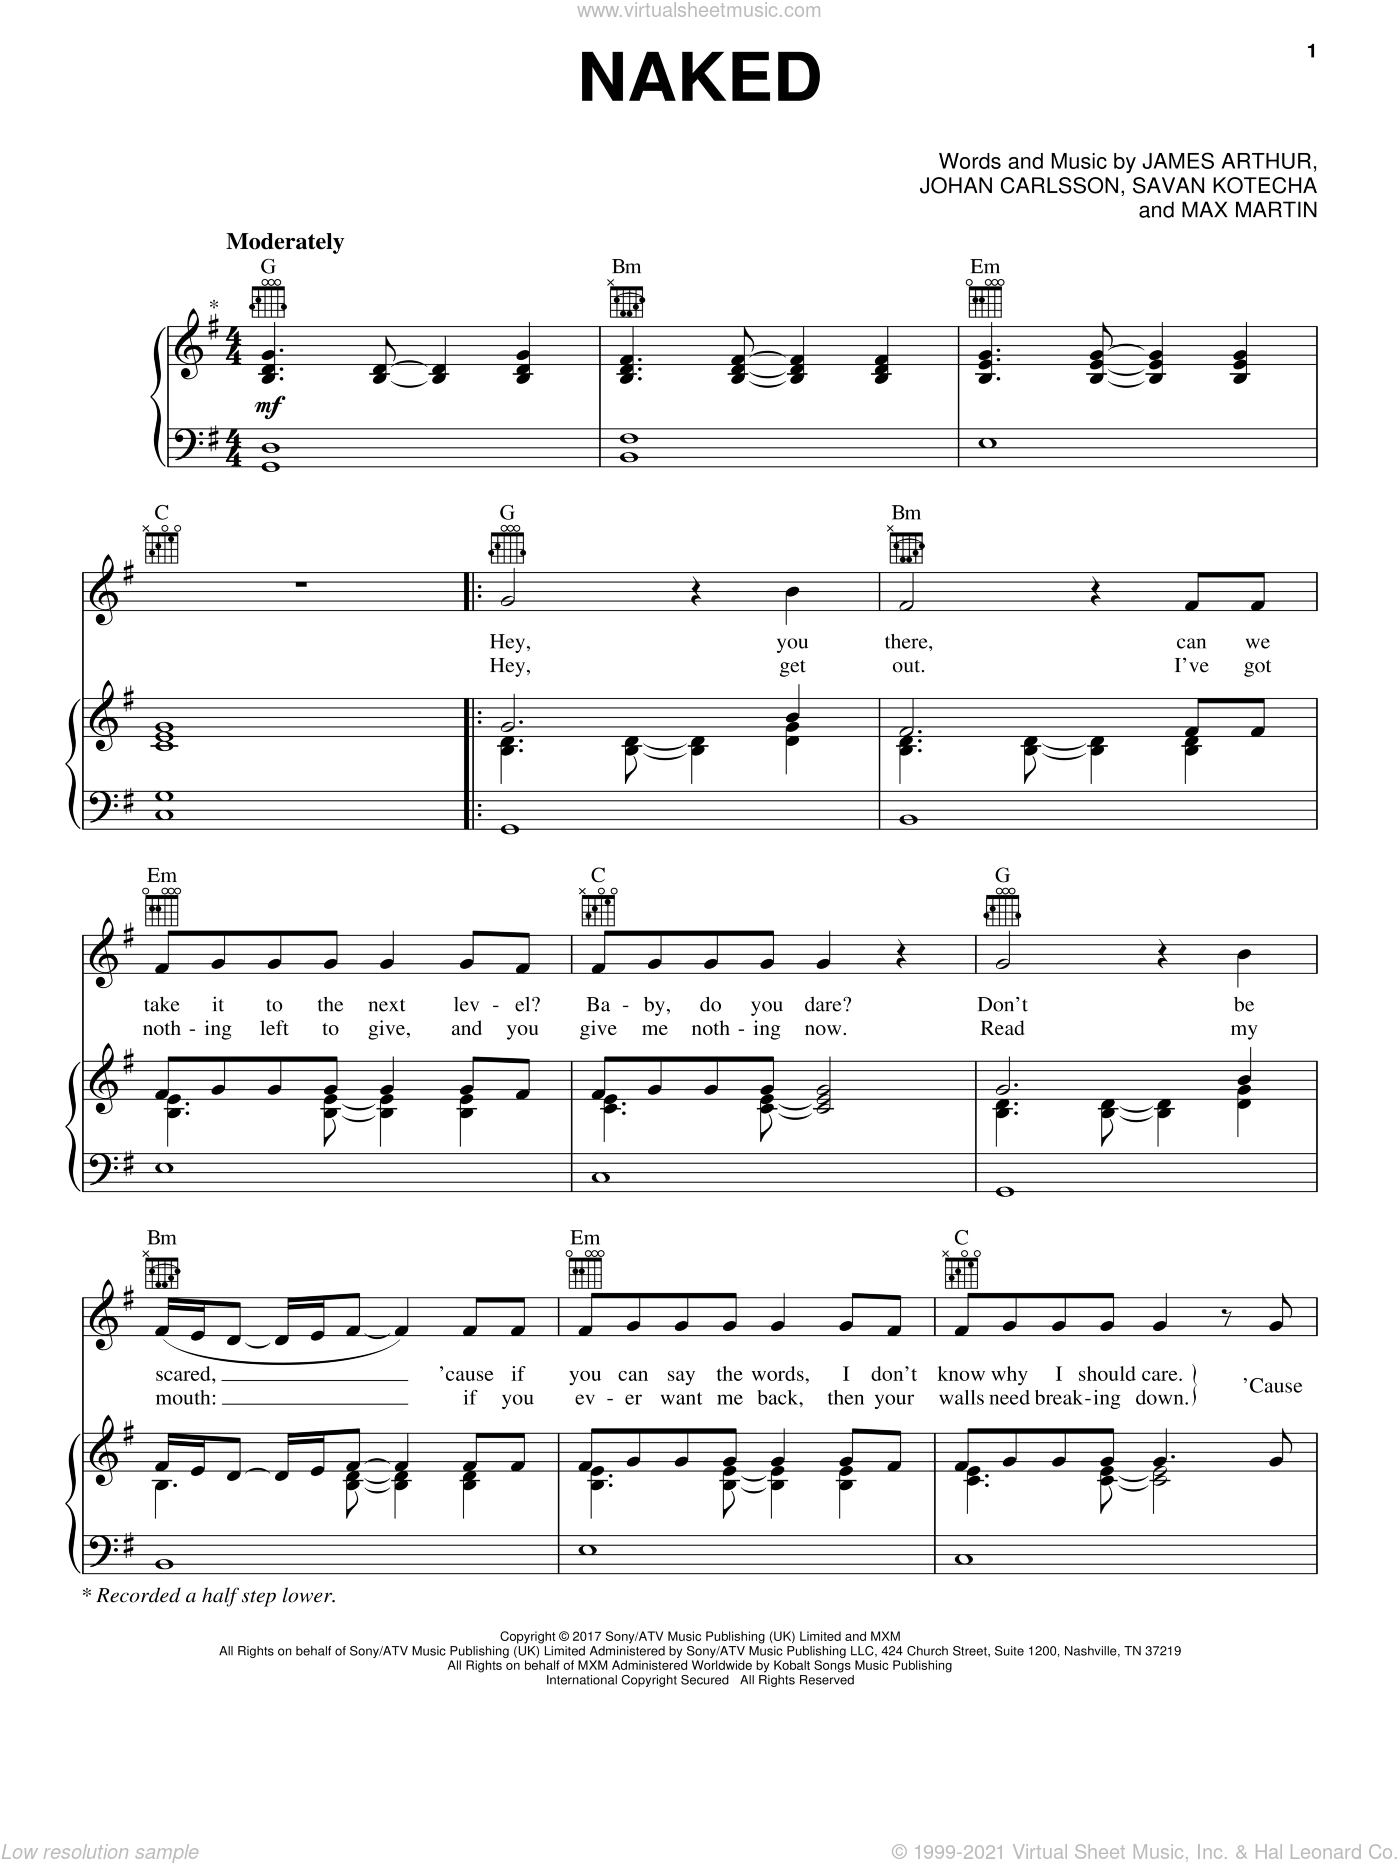 Naked sheet music for voice, piano or guitar by James Arthur, Johan Carlsson, Max Martin and Savan Kotecha, intermediate skill level